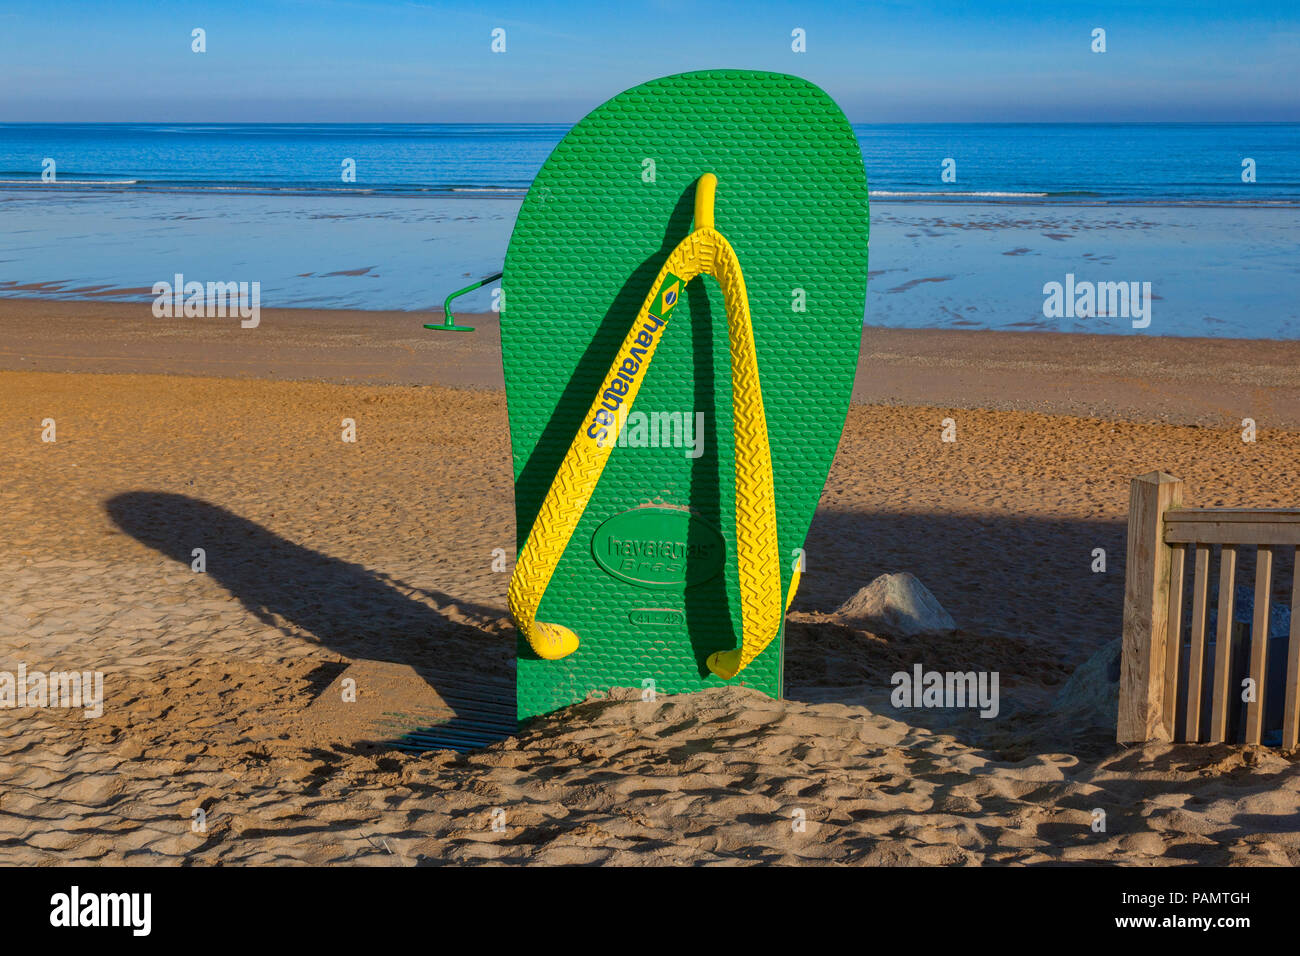 24 June 2018: Newquay, Cornwall UK - A beach shower in the shape of a big flip flop on Fistral Beach. - Stock Image